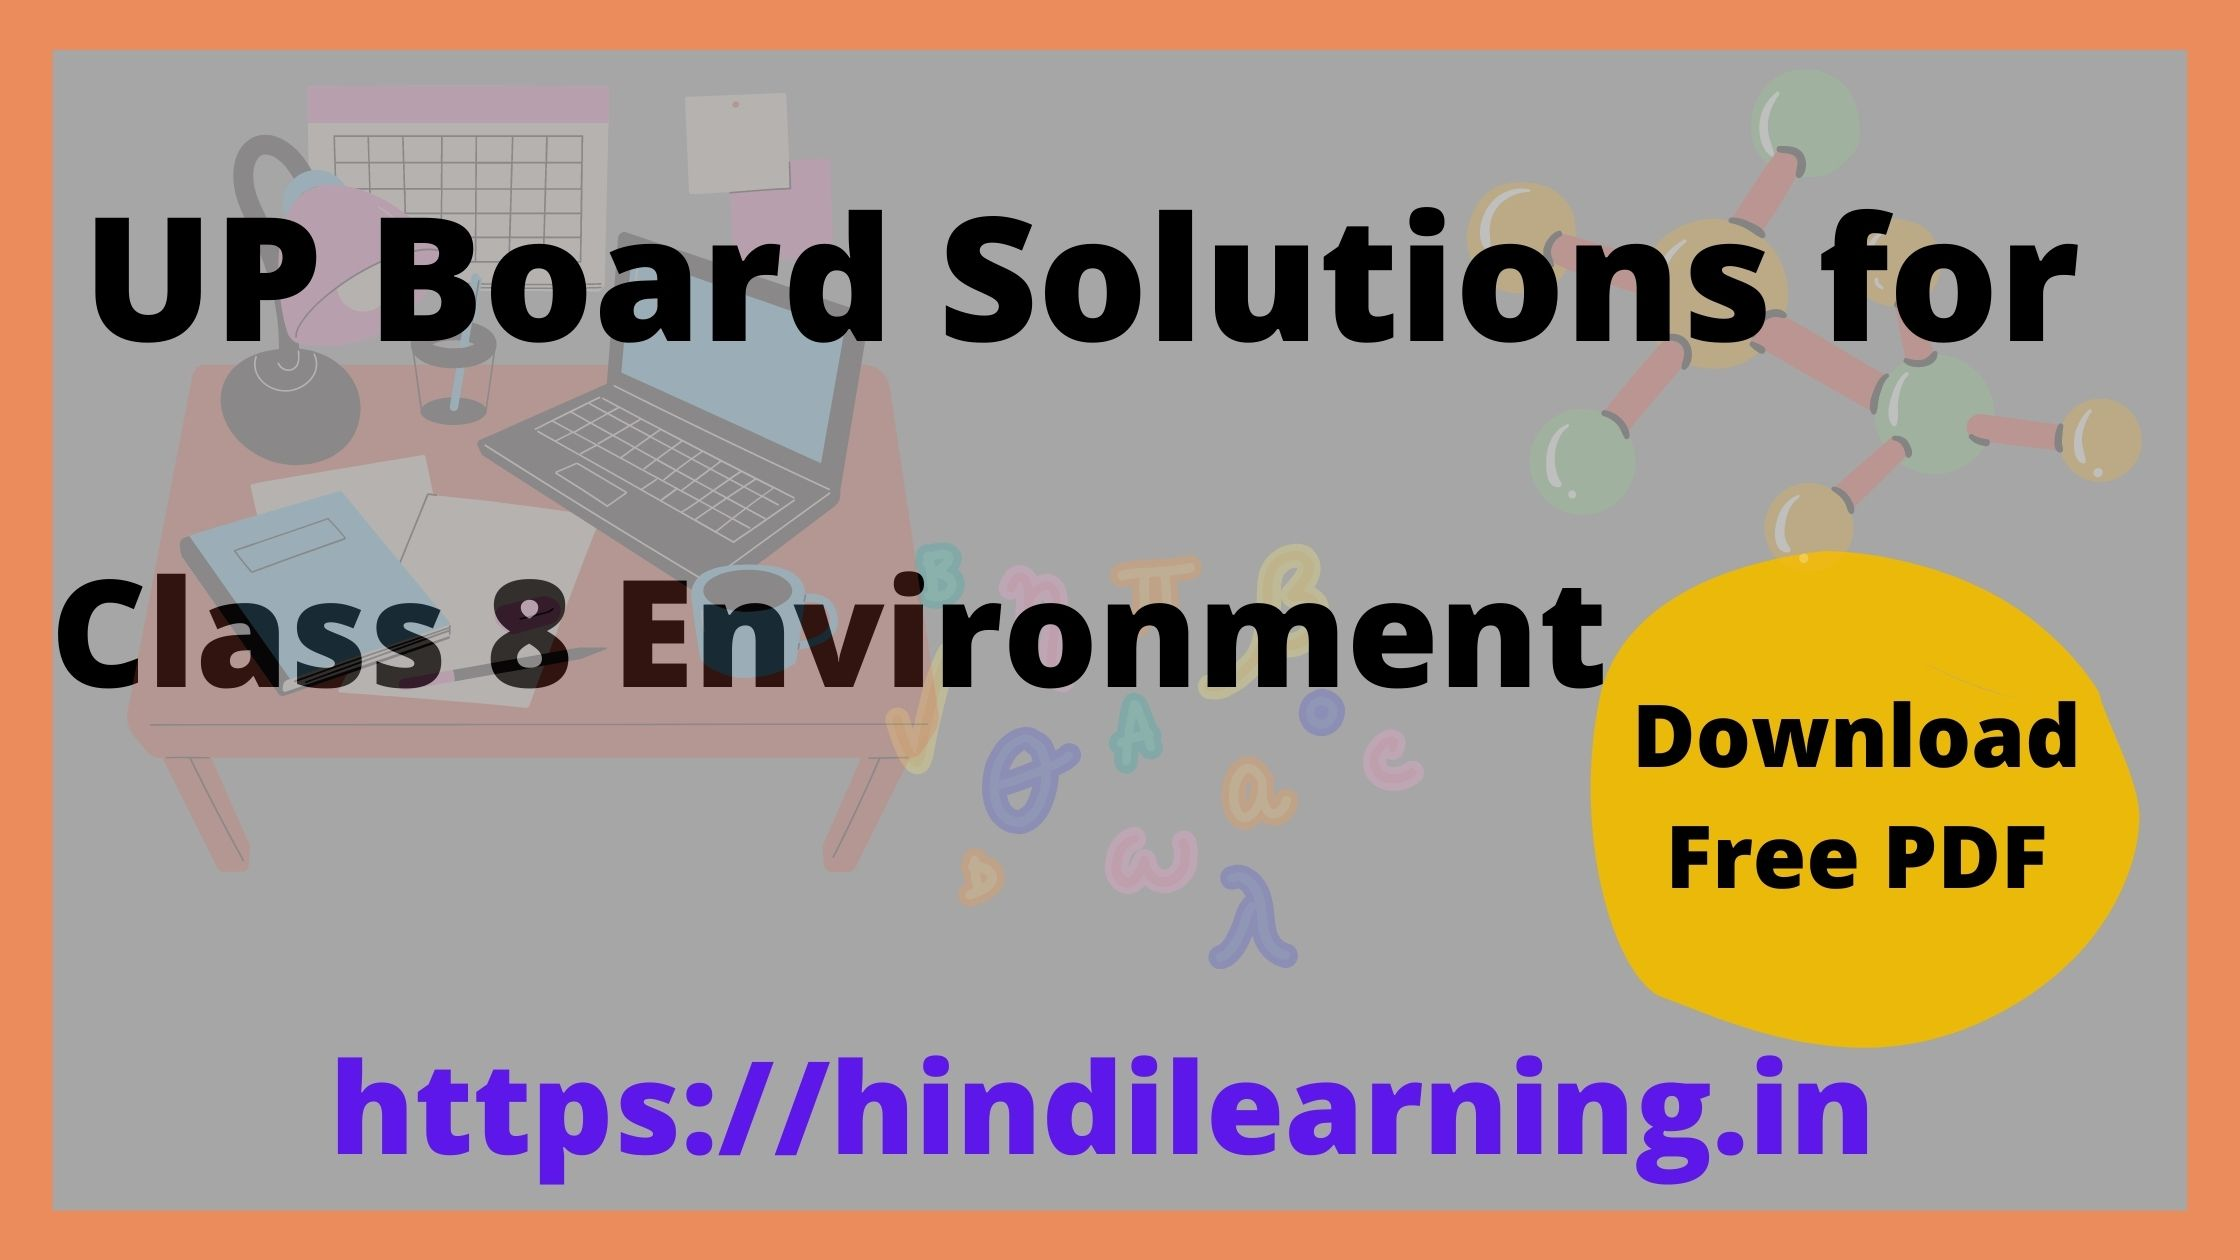 UP Board Solutions for Class 8 Environment ( पर्यावरण )